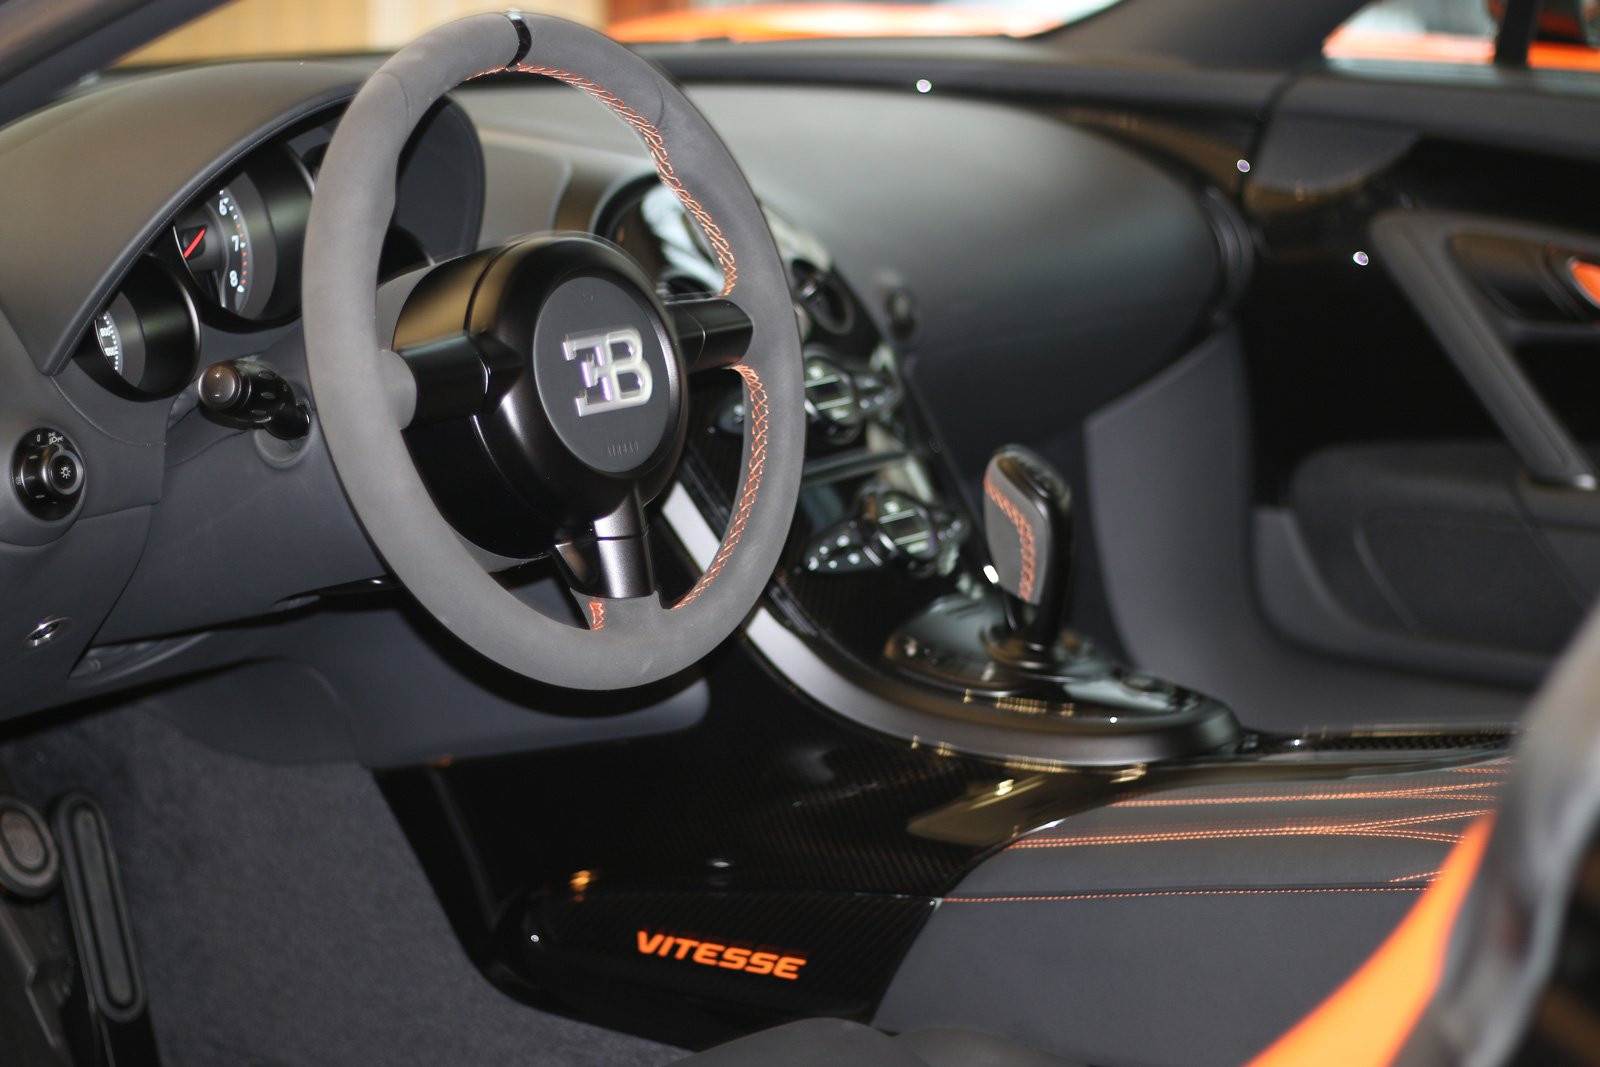 bugatti veyron world record car up for sale exotic car list. Black Bedroom Furniture Sets. Home Design Ideas